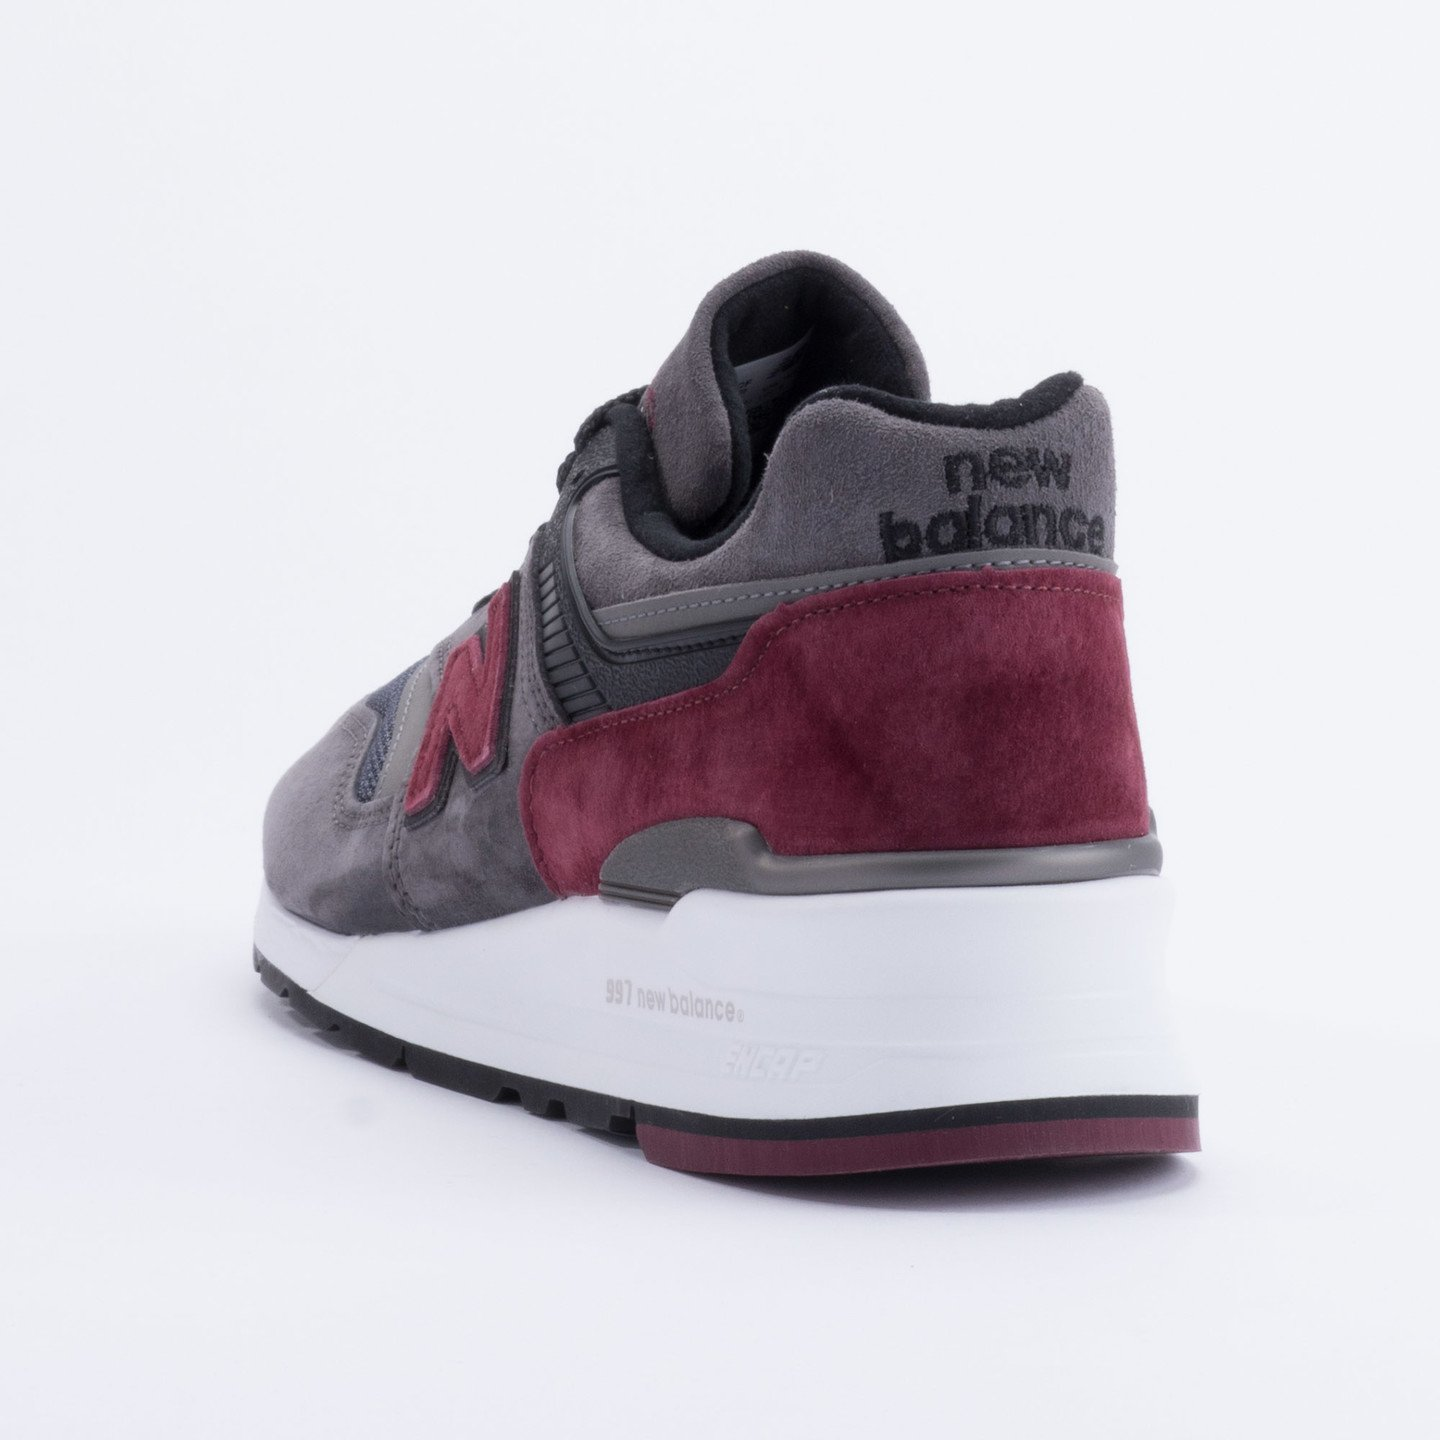 New Balance M997 Made in USA Charcoal/Burgundy M997CCF-40.5